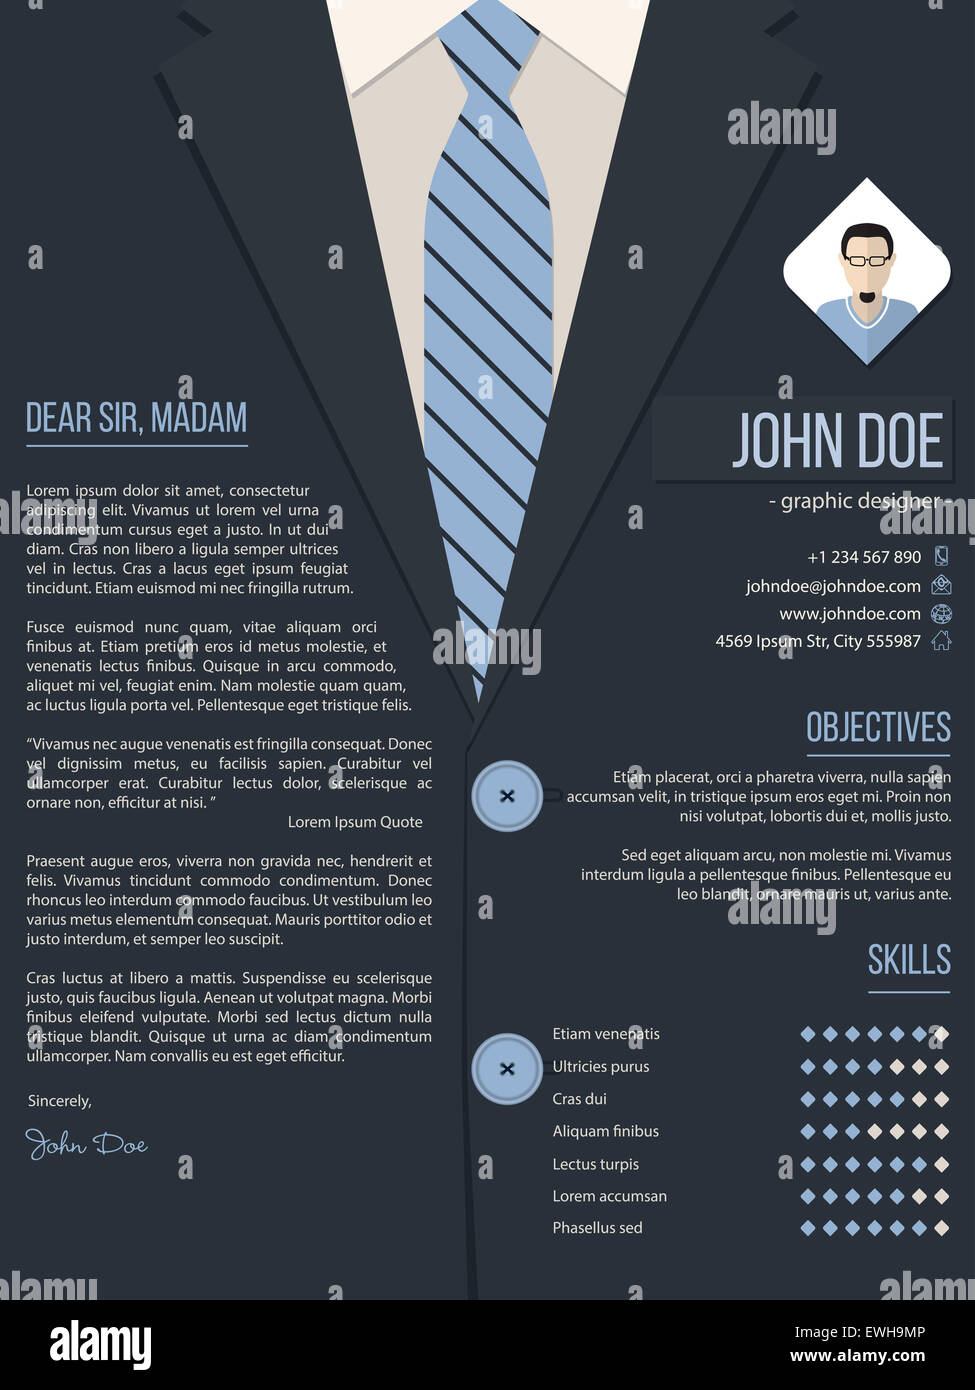 cool cover letter resume cv template design with business suit stock photo  royalty free image